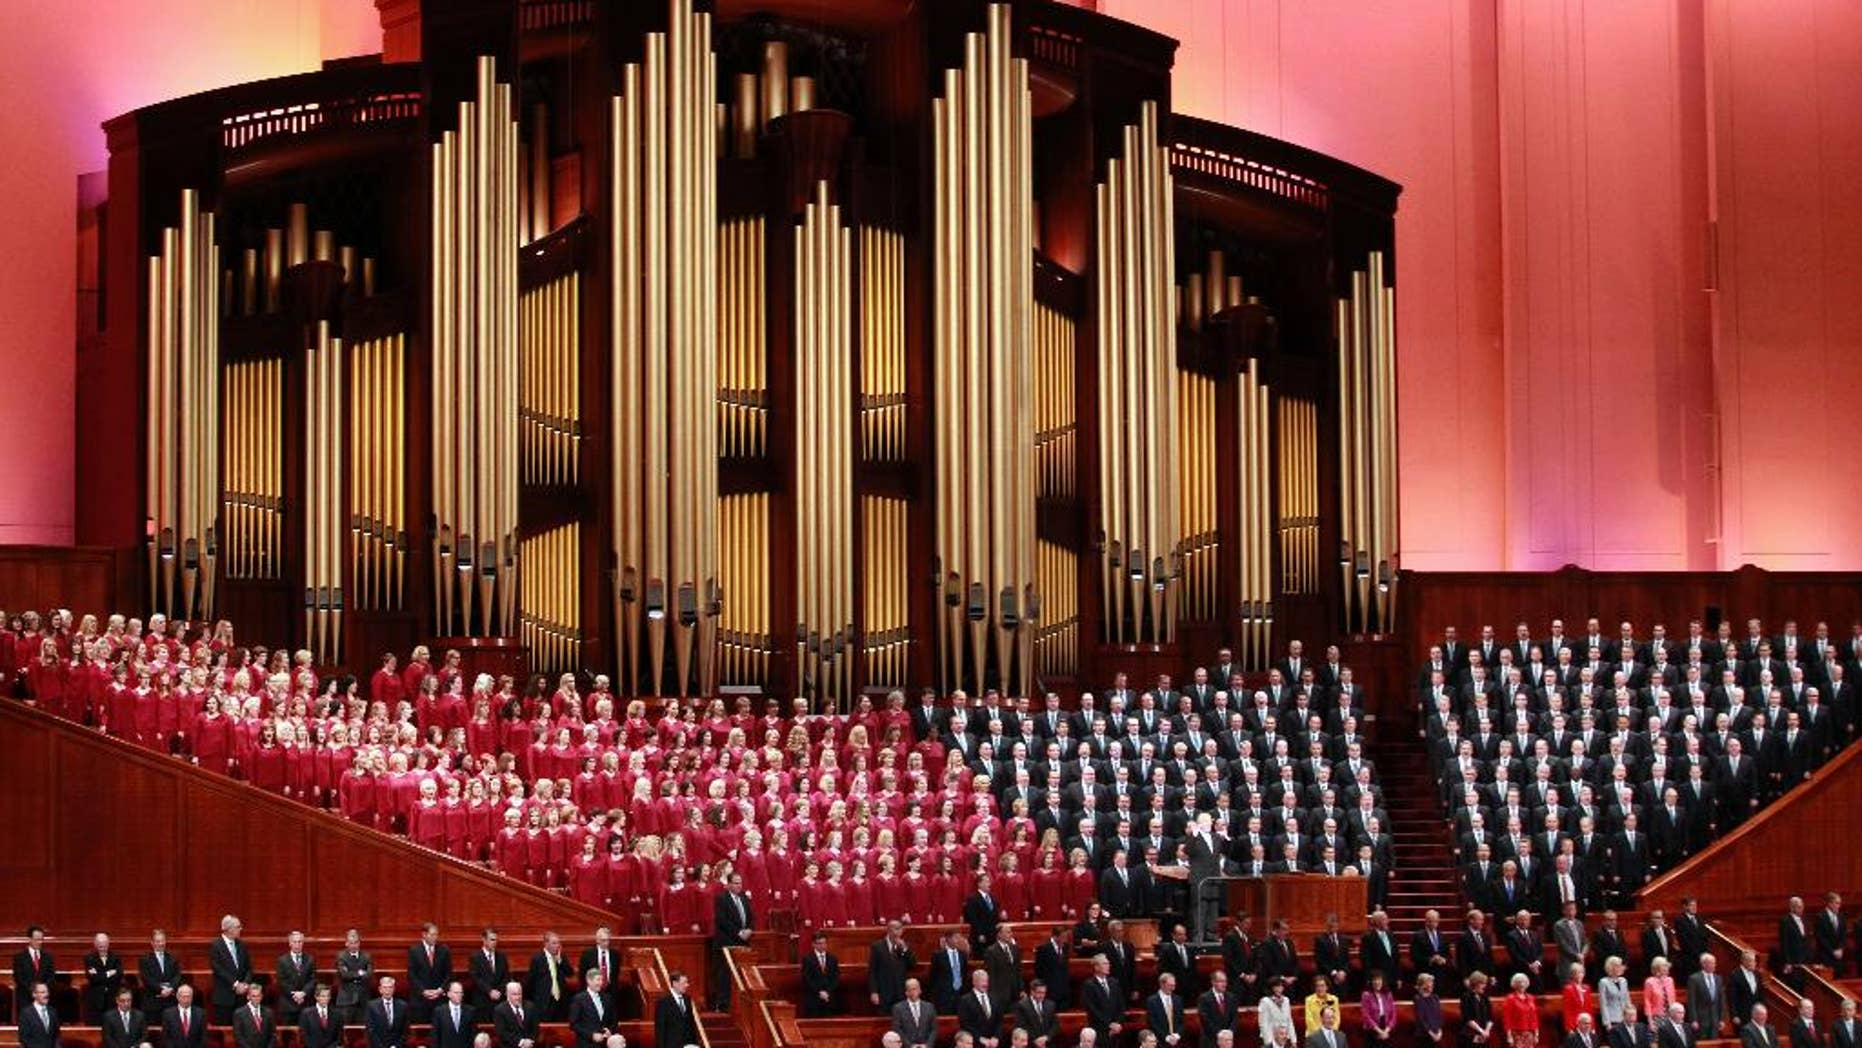 """FILE - In this Oct. 1, 2016, file photo, the Mormon Tabernacle Choir of The Church of Jesus Christ of Latter-day Saints, sings in the Conference Center at the morning session of the two-day Mormon church conference in Salt Lake City. Choir member Jan Chamberlin posted a resignation letter that she says she sent to choir leaders on her Facebook page Thursdaym Dec. 29, 2016. In it, she writes that by performing at the inaugural, the 360-member Choir will appear to be """"endorsing tyranny and facism"""" and says she feels """"betrayed"""" by the choir's decision to take part. (AP Photo/George Frey, File)"""